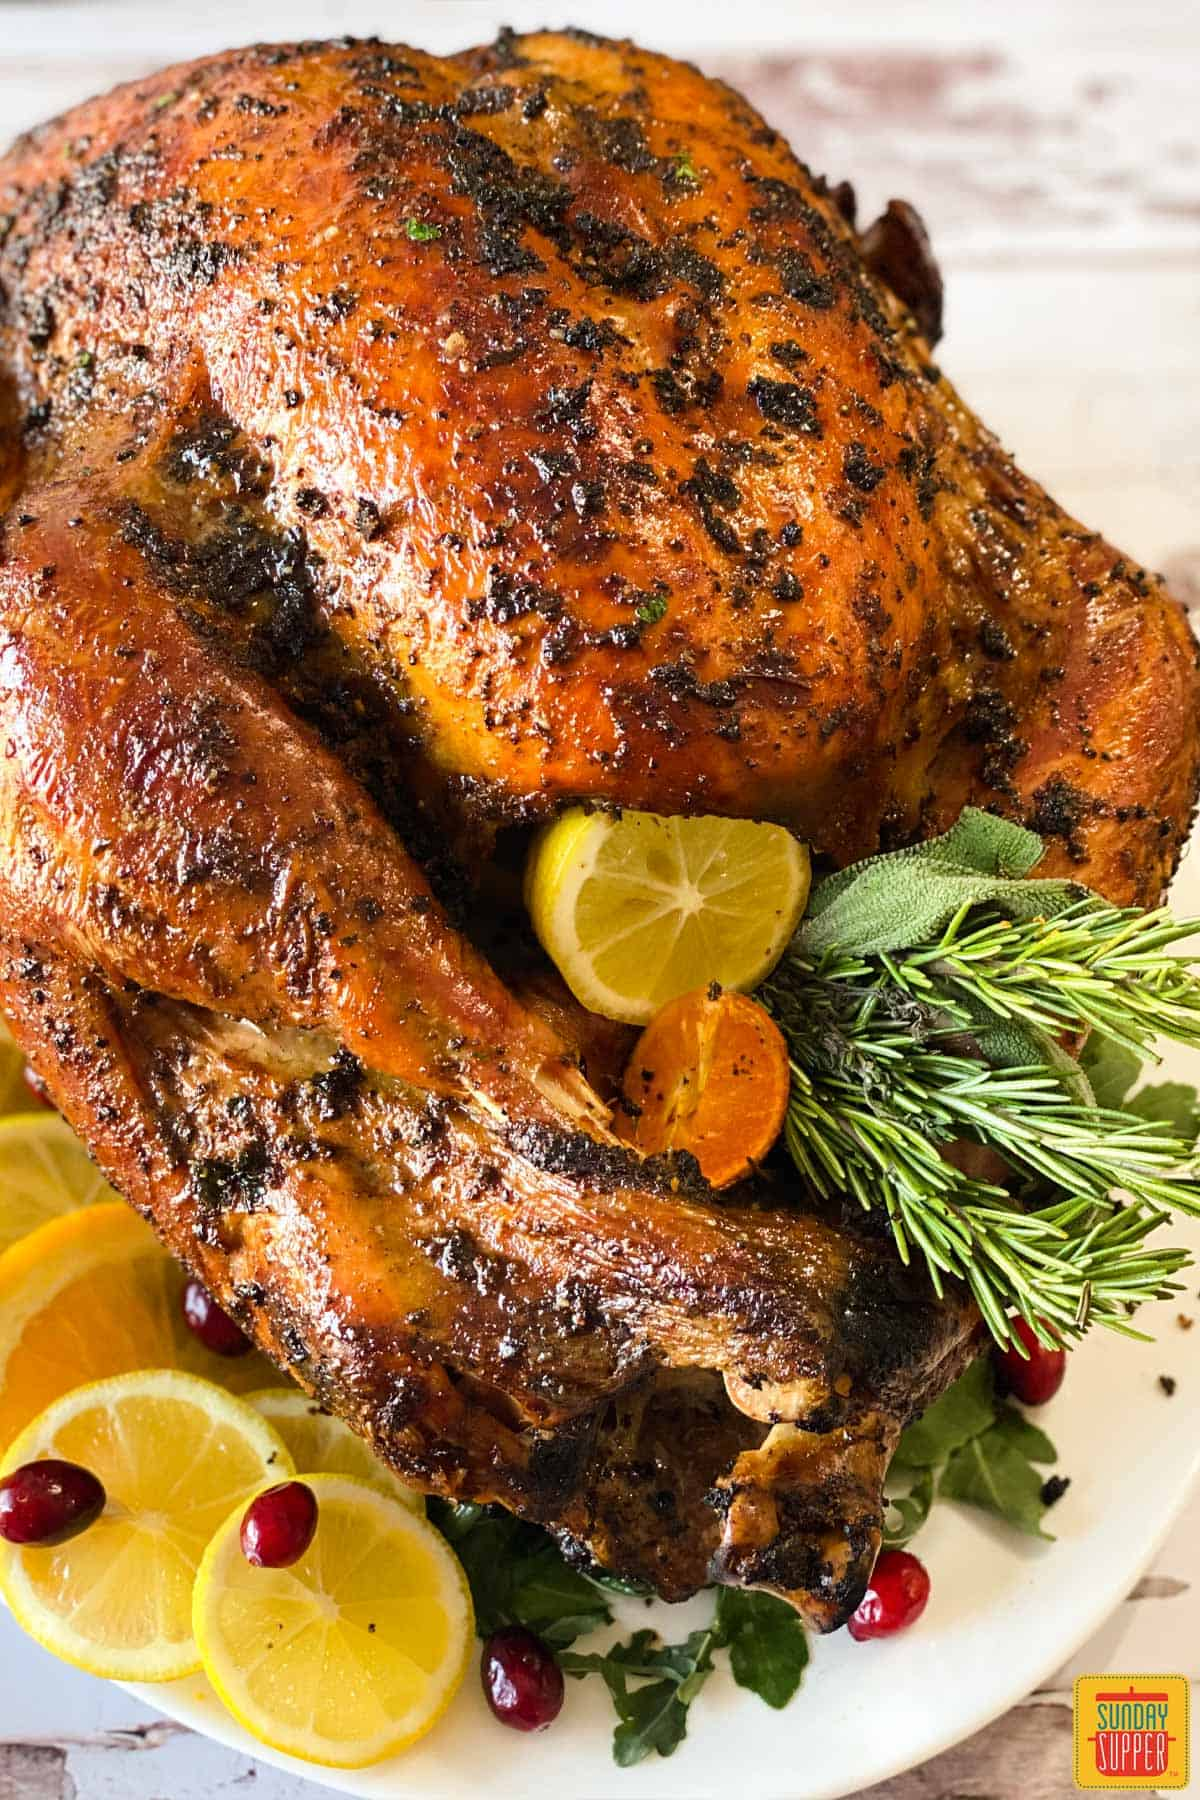 Close up of grilled turkey on a platter with citrus, herbs, and cranberries